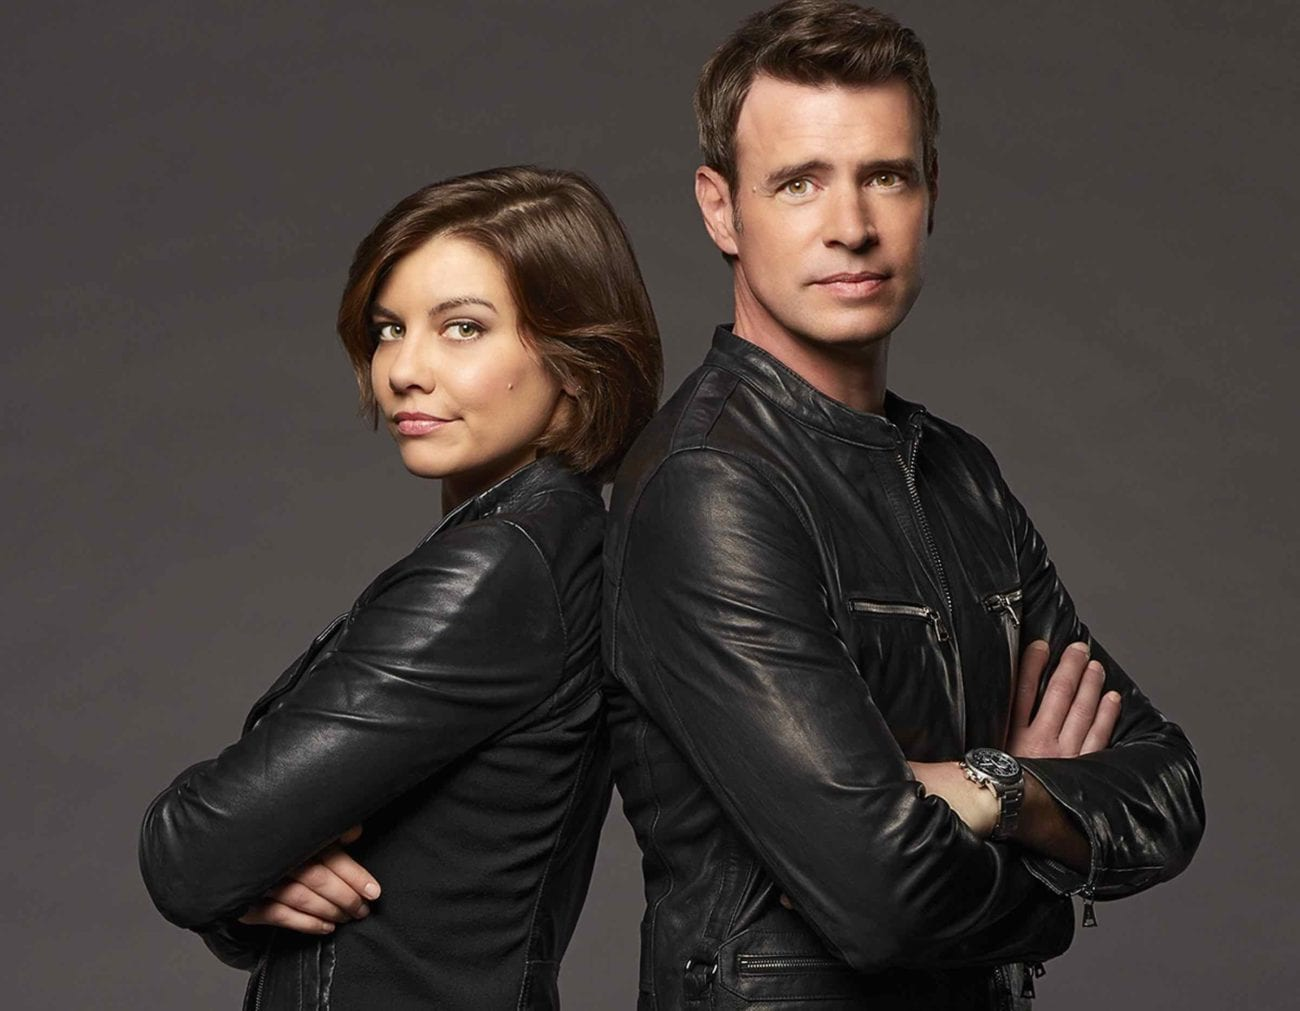 We chatted with 'Whiskey Cavalier' fans about what this ABC show means to them and how they plan to fight back against its cancellation.